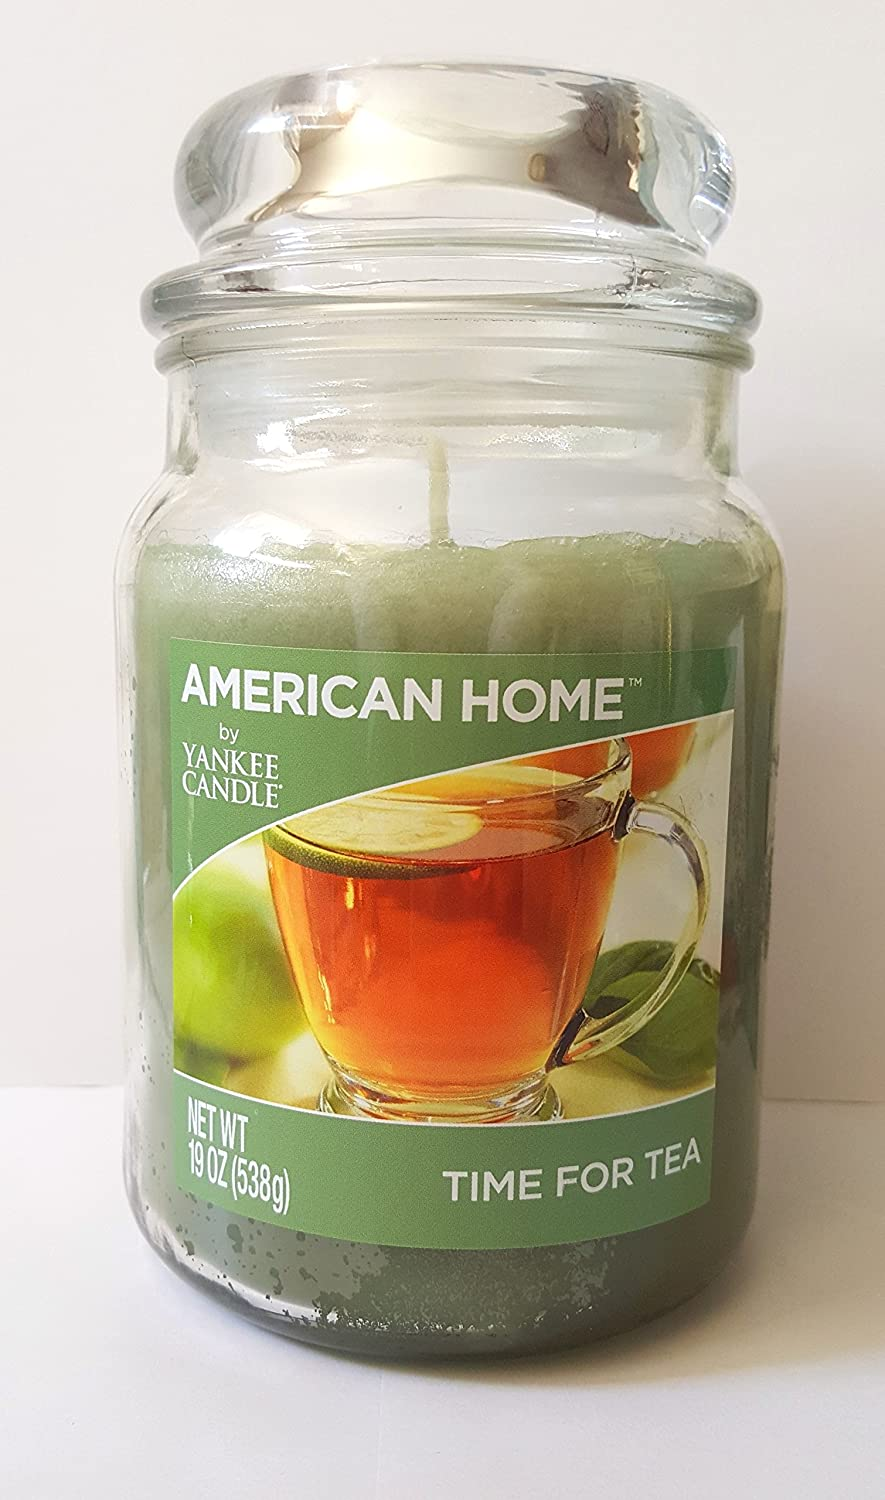 Yankee Candle American Home 19 Ounce 1-Wick Jar Time for Tea Green